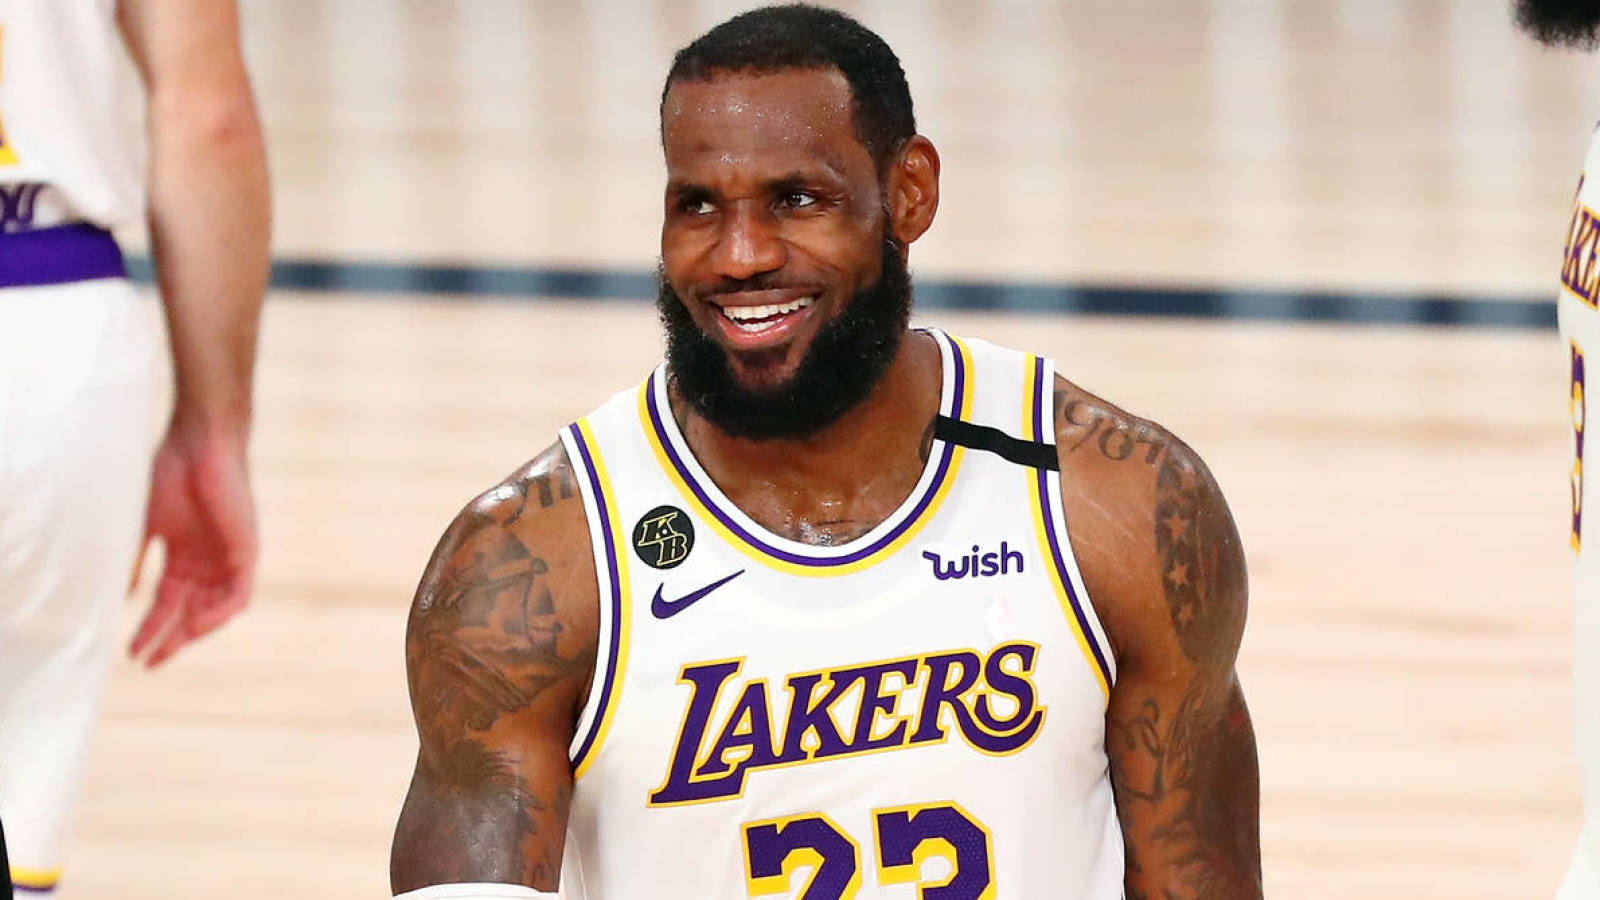 LeBron James-Barack Obama interview to air ahead of Election Day